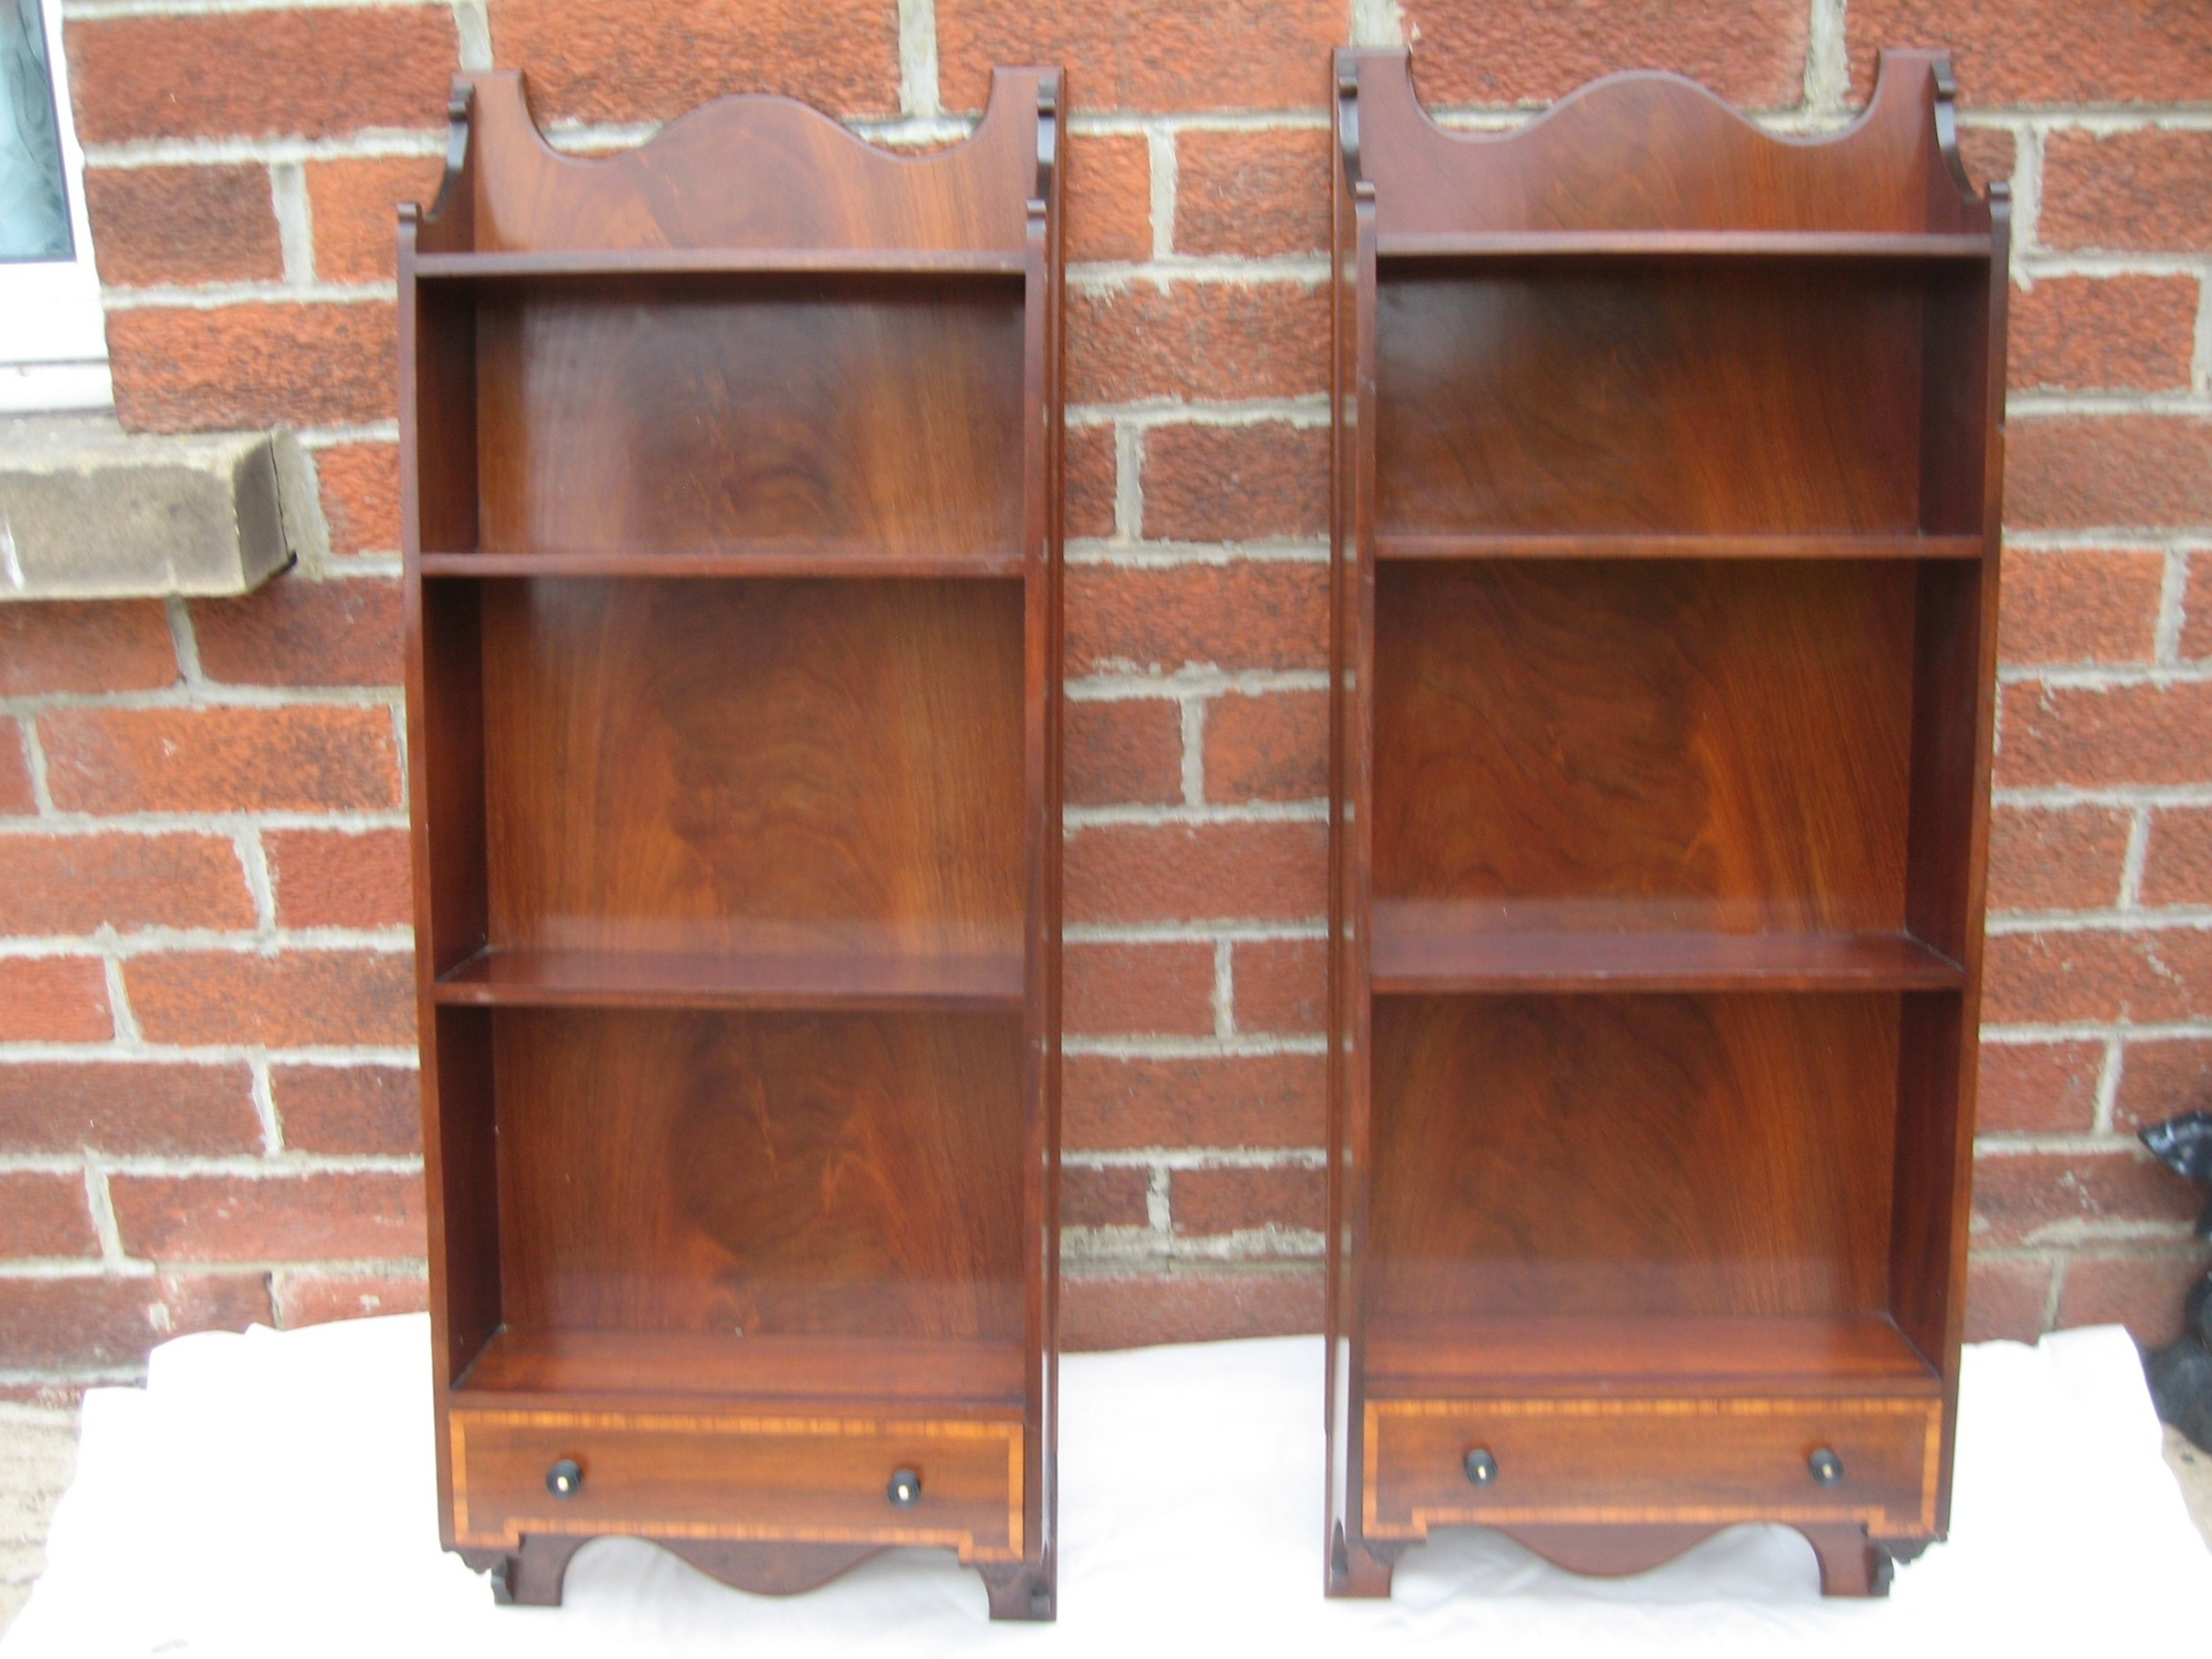 attractive pair of 19th century wall hanging shelves